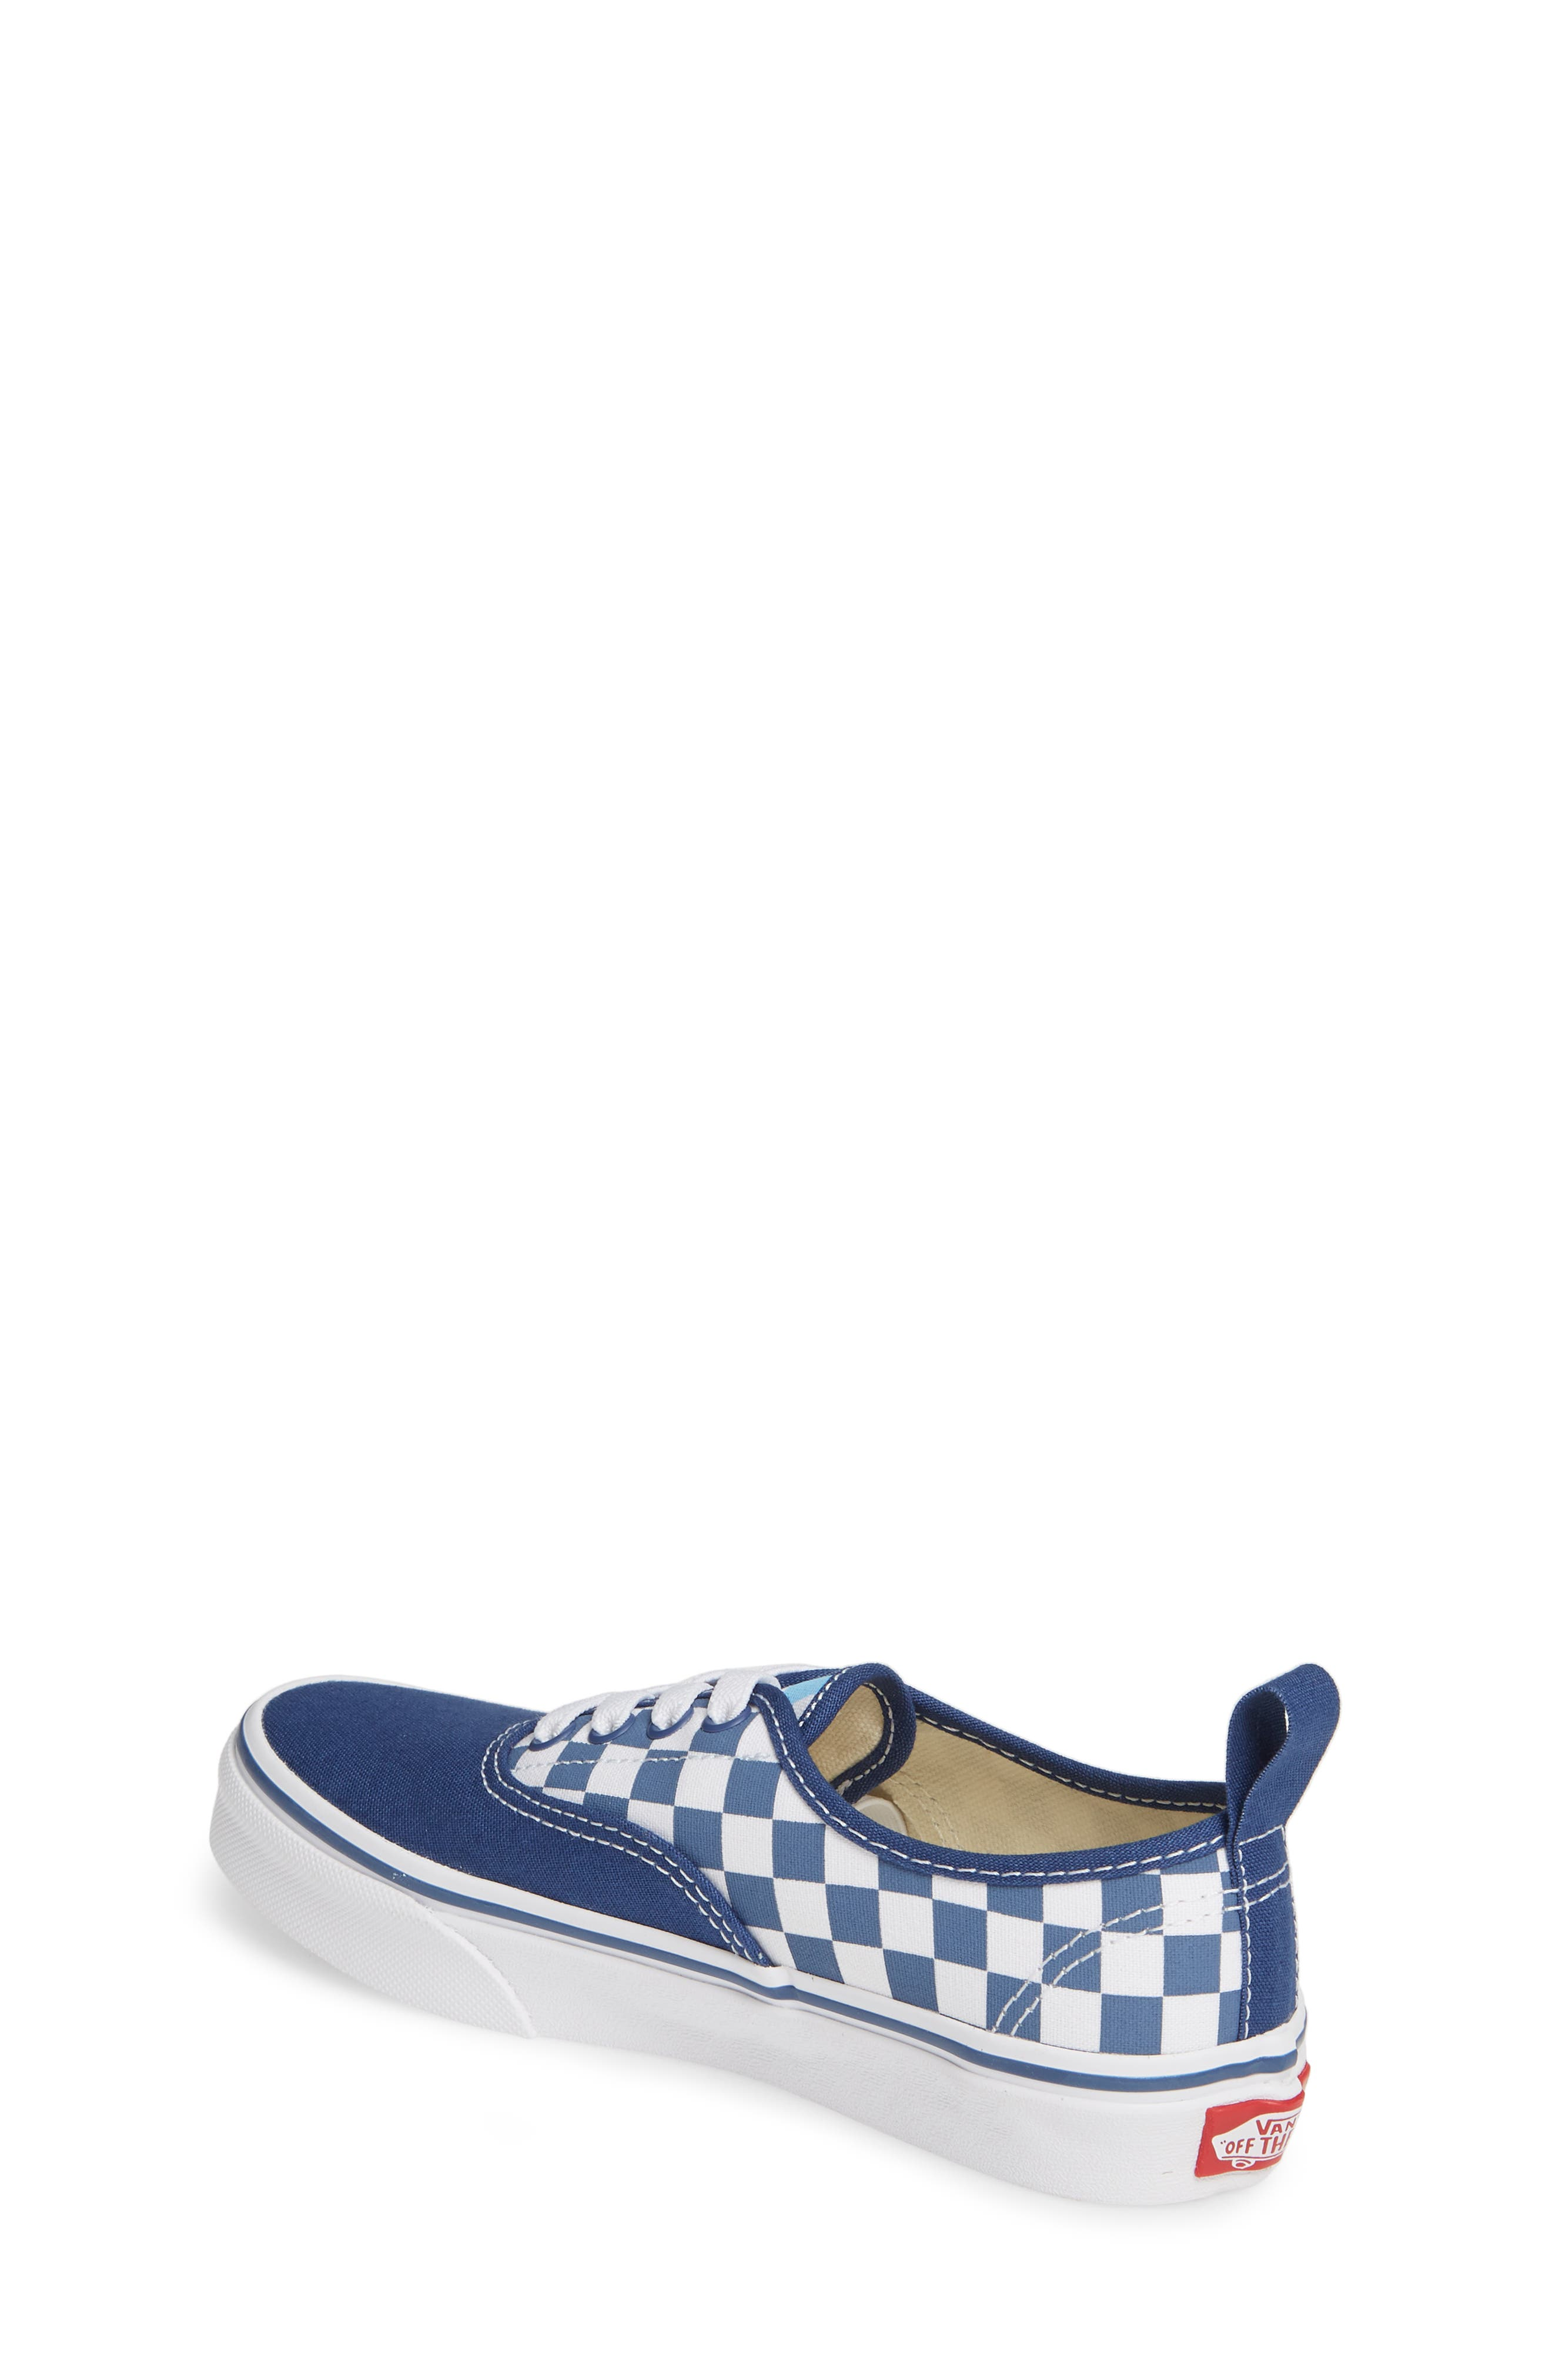 VANS, Authentic Elastic Lace Sneaker, Alternate thumbnail 2, color, TRUE NAVY/ BONNIE BLUE